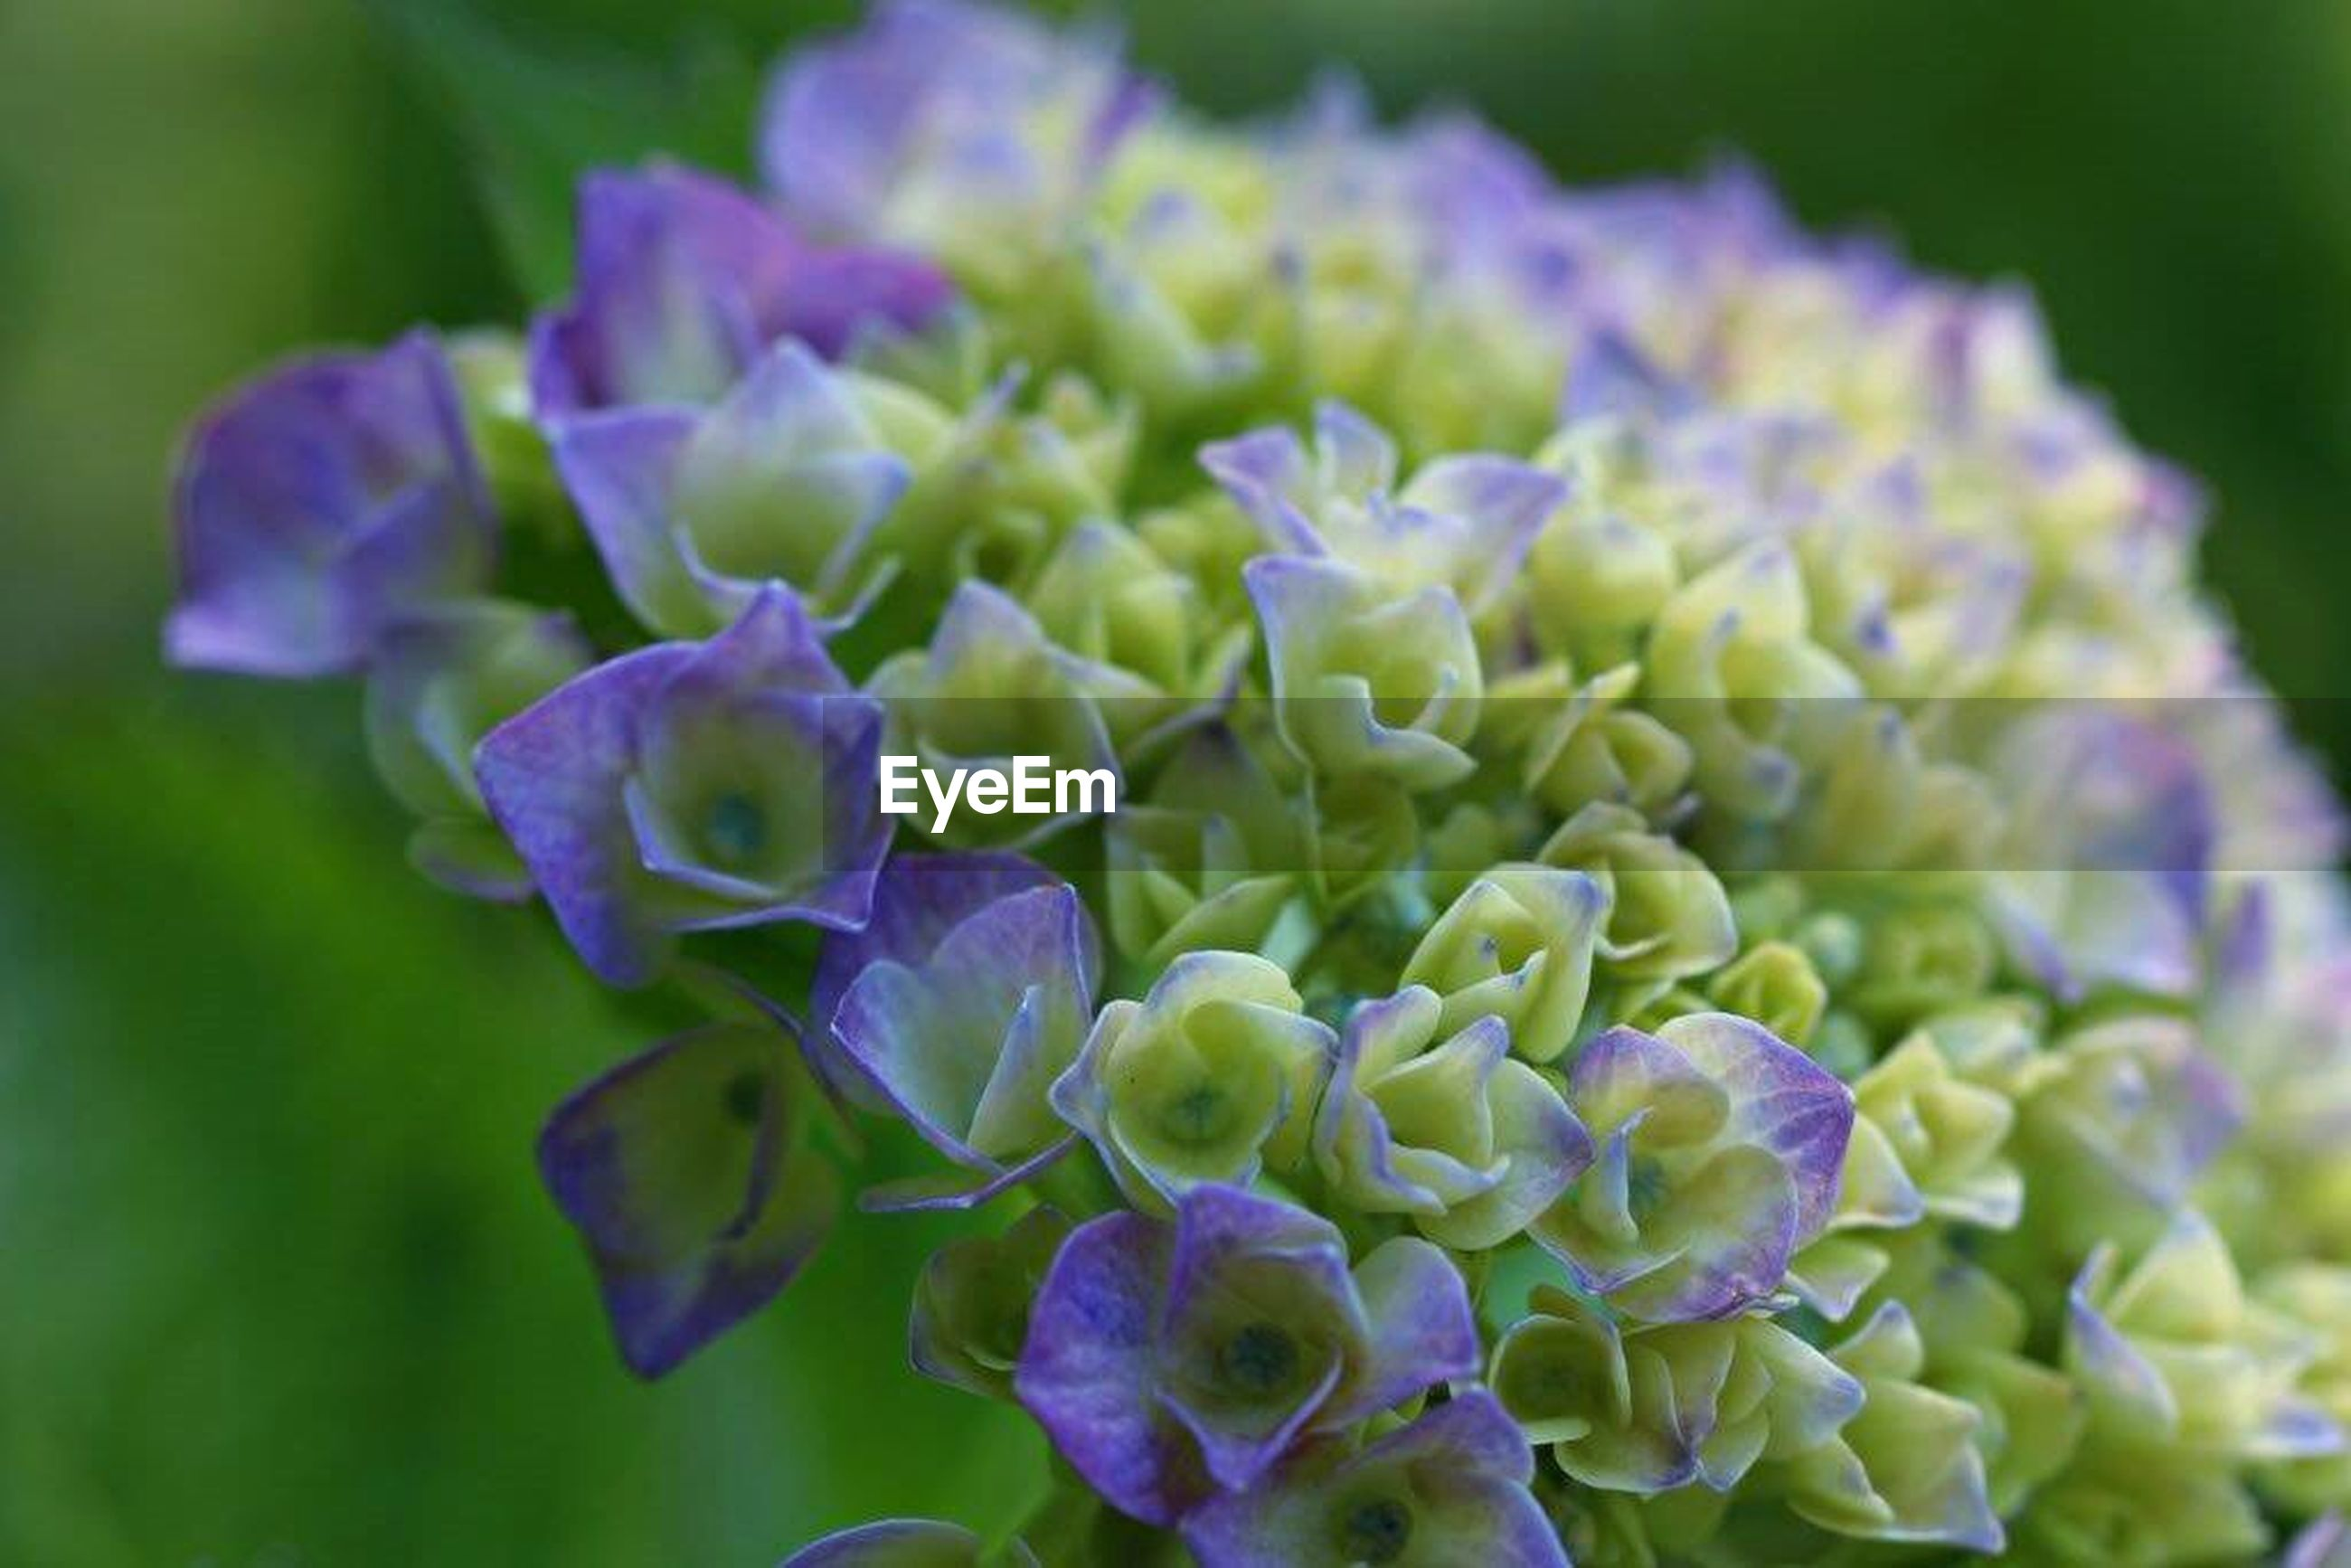 flower, freshness, purple, petal, fragility, flower head, growth, beauty in nature, close-up, focus on foreground, plant, blooming, nature, in bloom, selective focus, blue, blossom, park - man made space, day, springtime